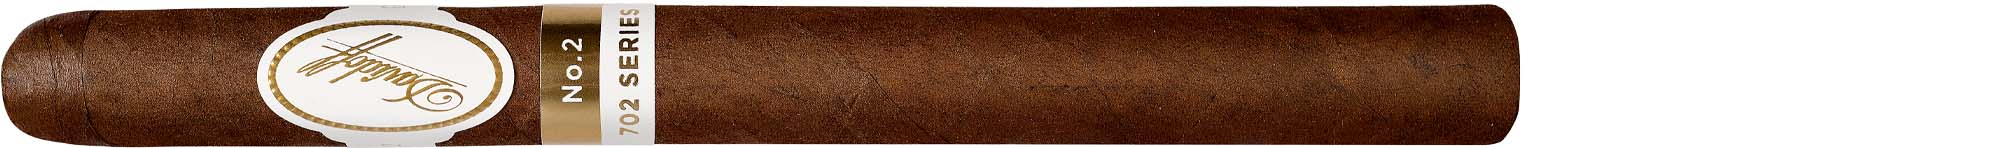 Davidoff 702 Series Signature No. 2 (Panetela)